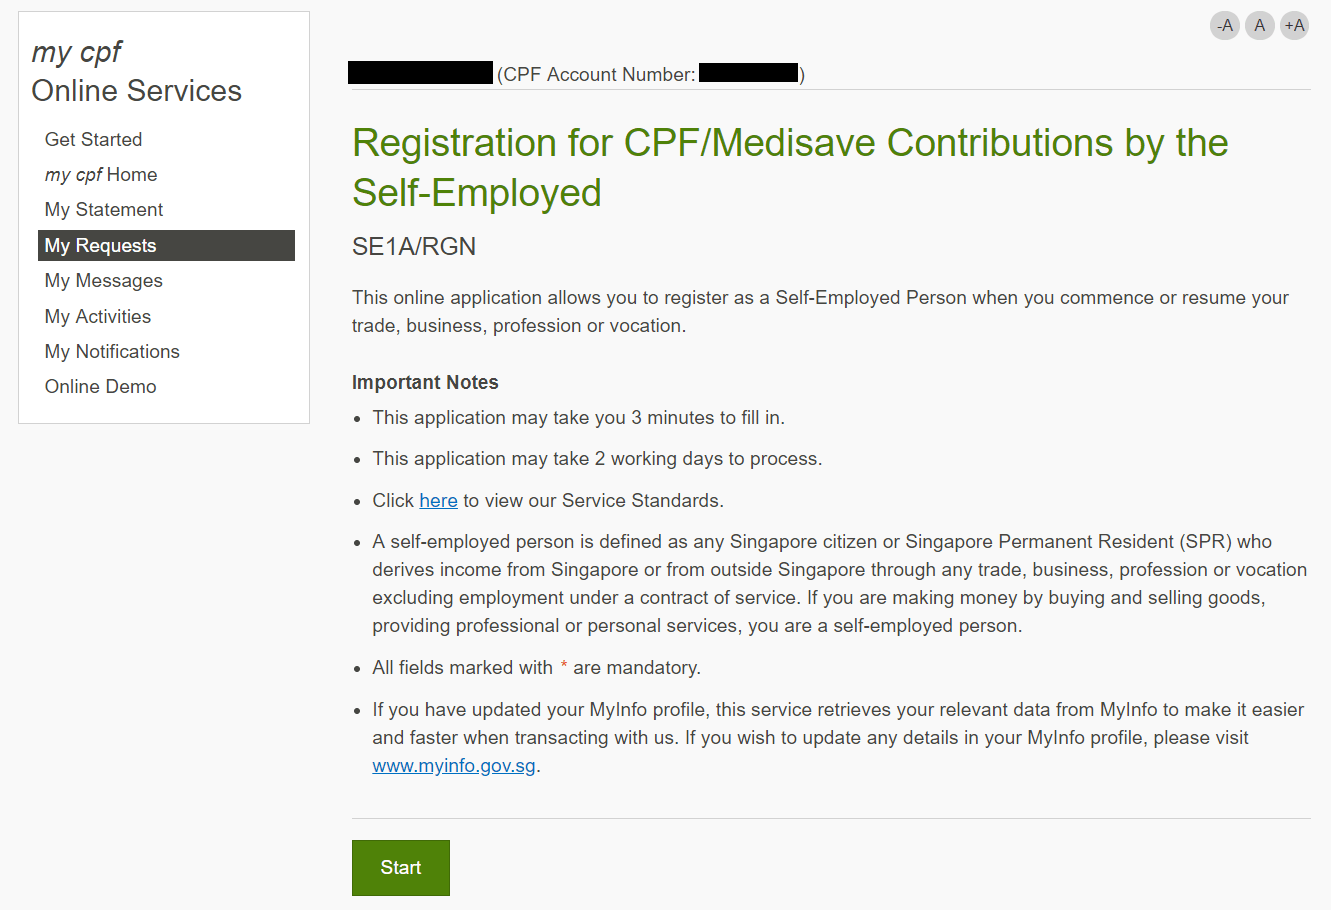 Screenshot of the Self-Employed Person registration page in the my cpf online service.